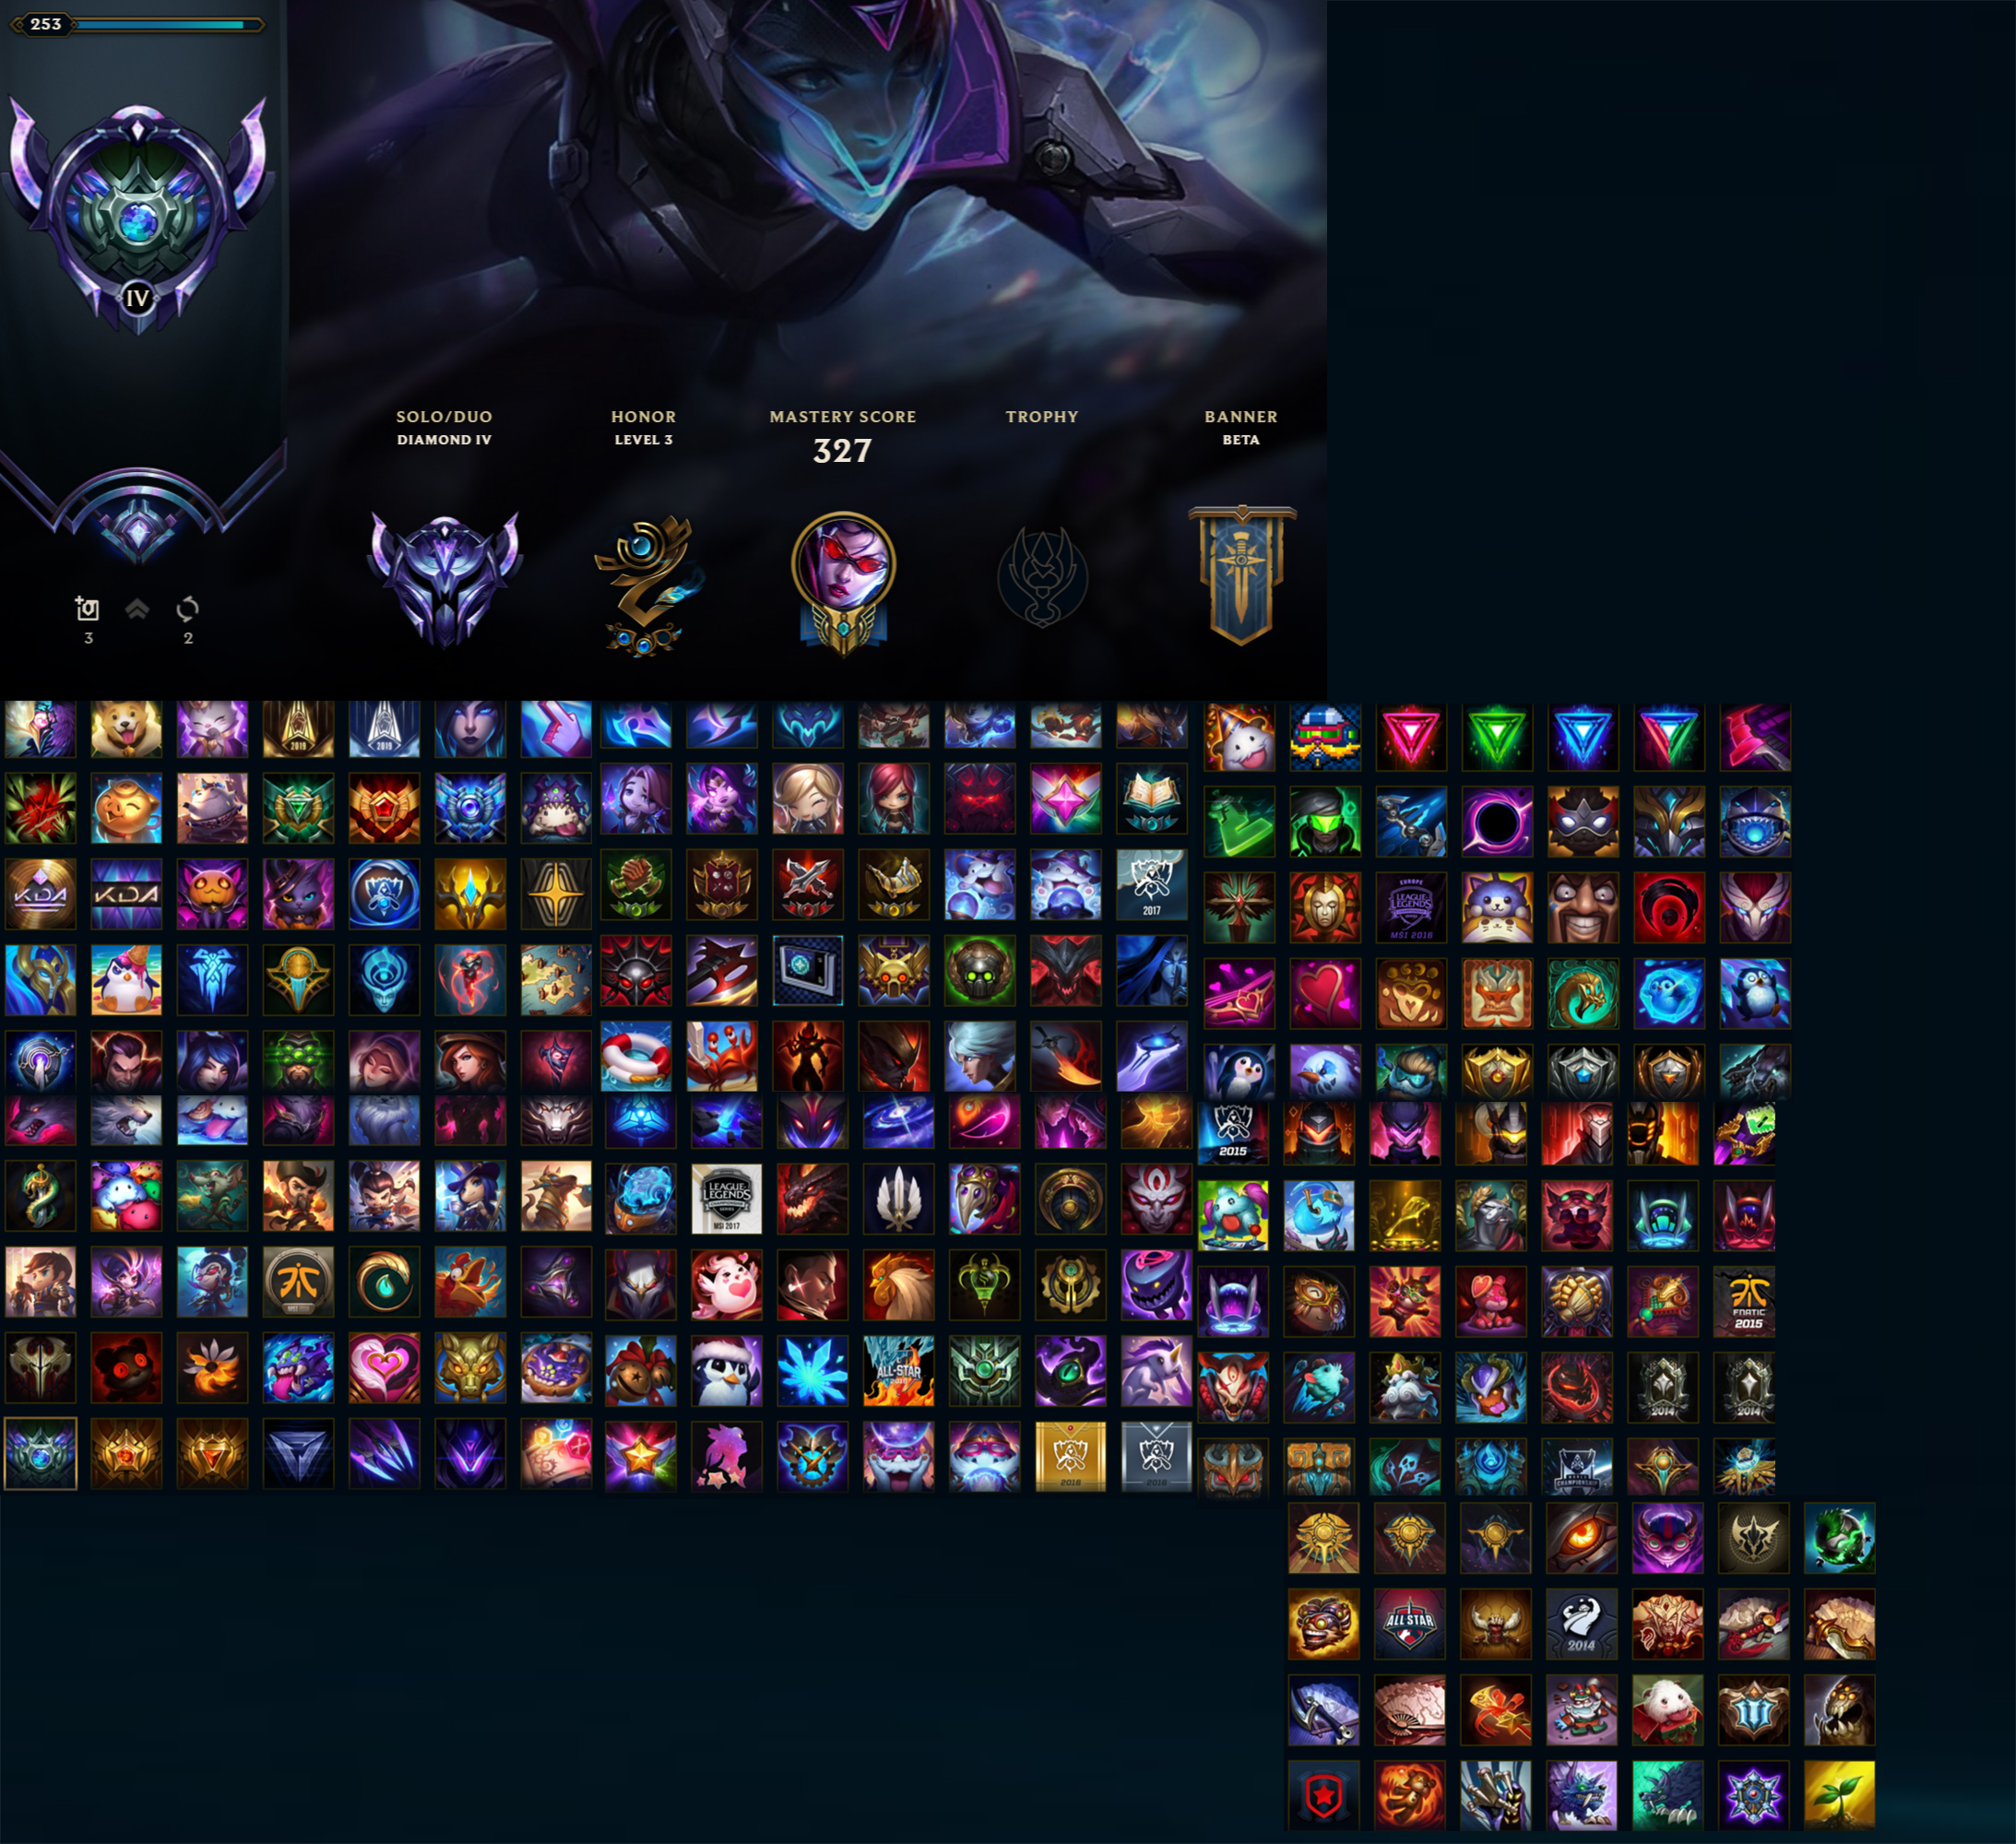 League of Legends Account for Sale: Diamond IV | 143 Champions | 100 Skins | S8. S7 Diamond | Victorious Oriana